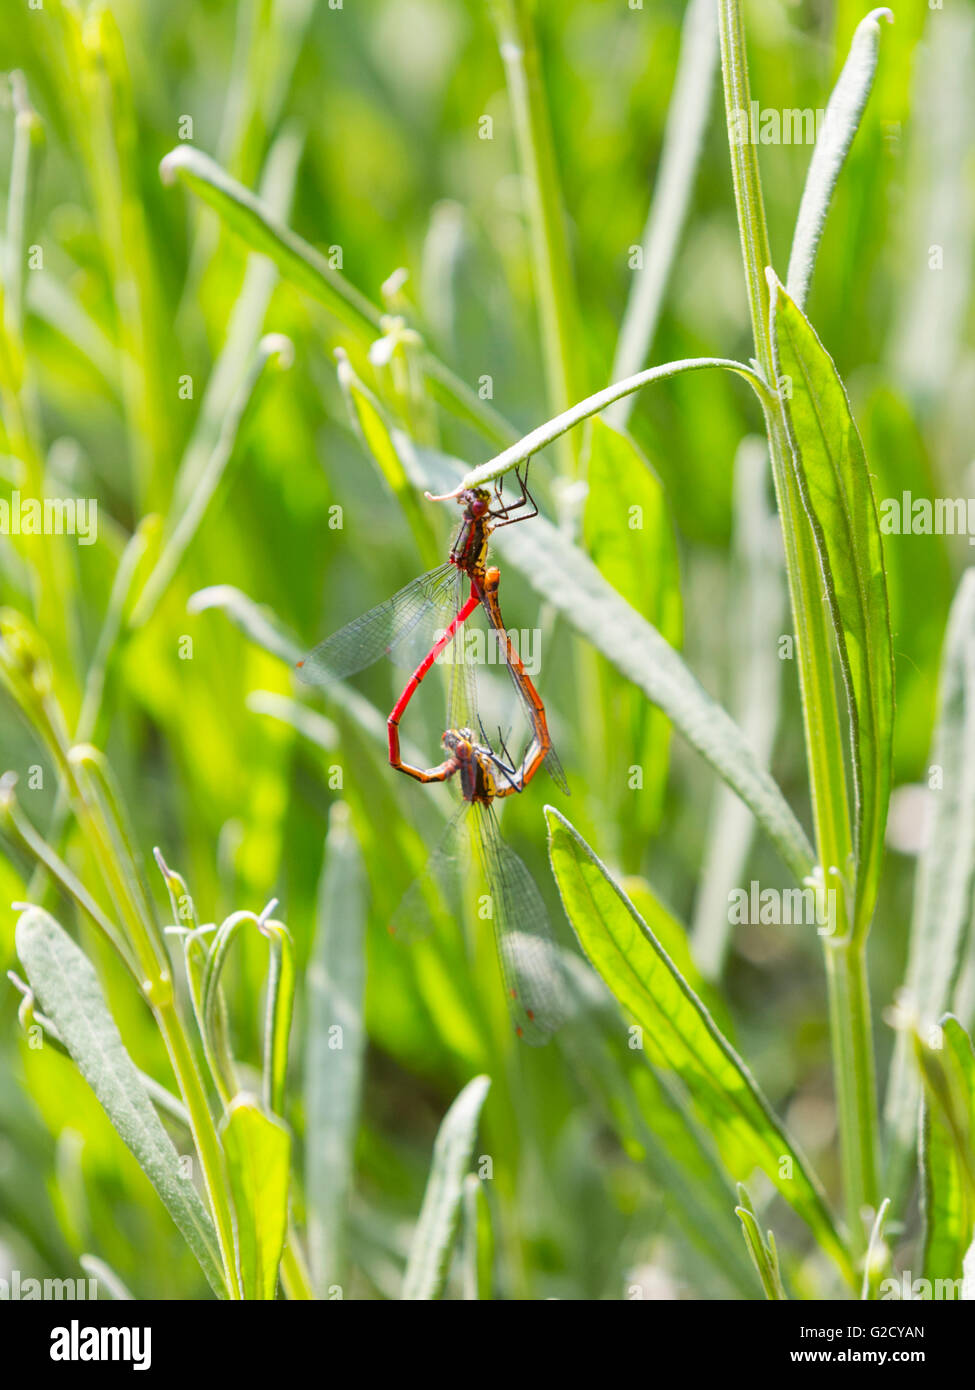 london uk 27th may 2016 two red damselflies mate forming a heart shape colourful damselflies emerge in a south london garden on a warm and sunny day - Cyan Garden 2016